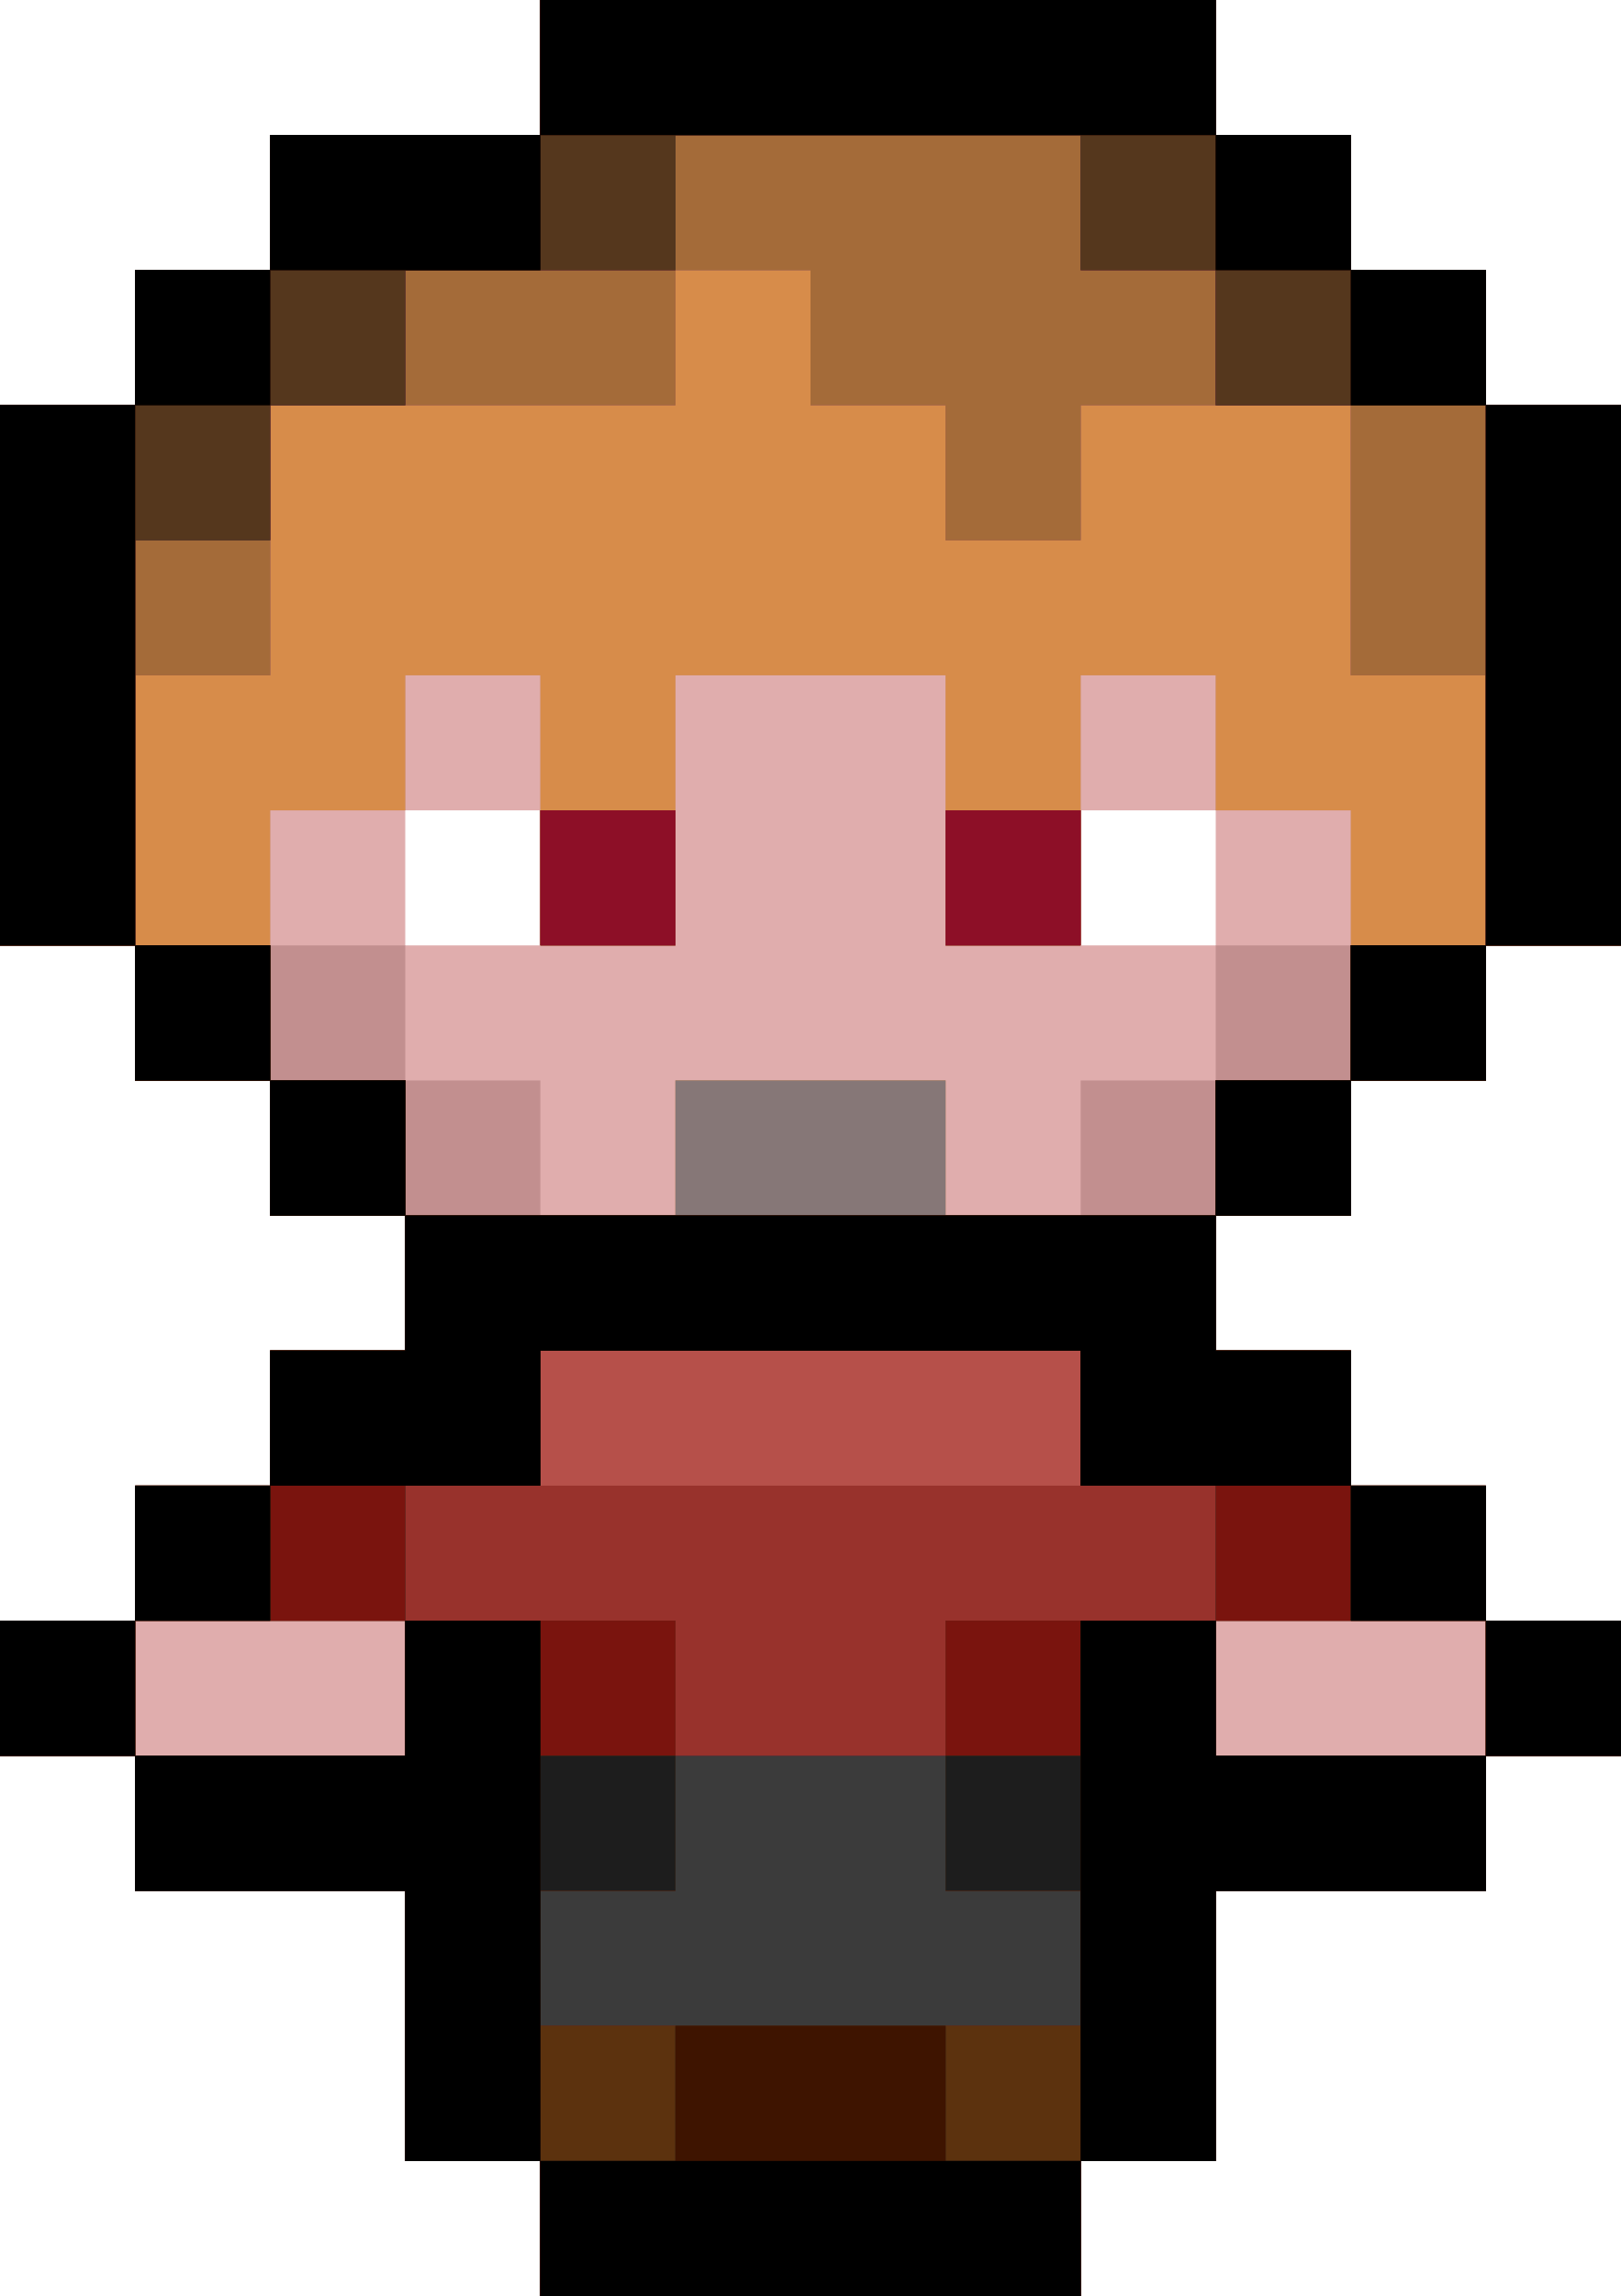 Pixel Character by isaiah658